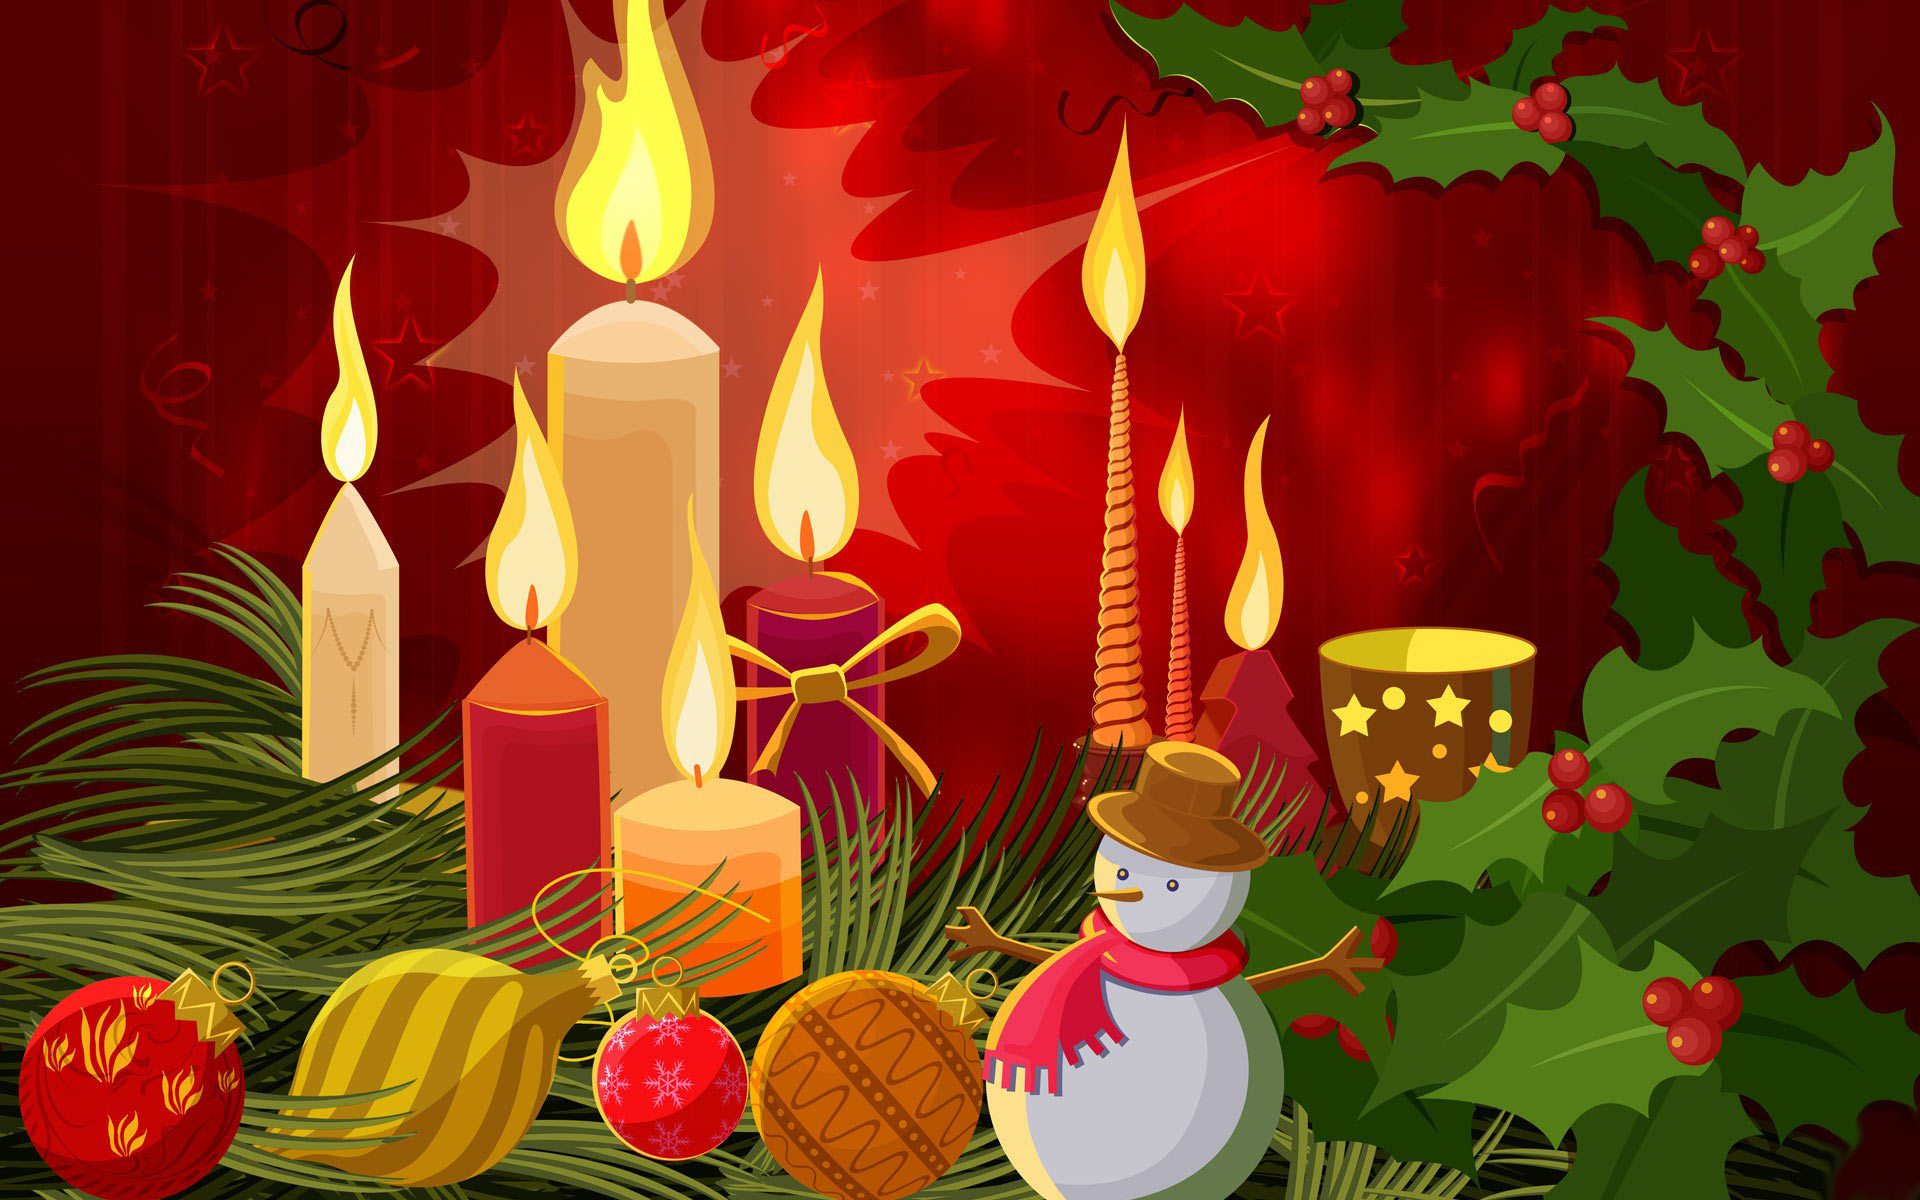 Merry Christmas background Desktop Wallpaper High Quality Wallpapers 1920x1200